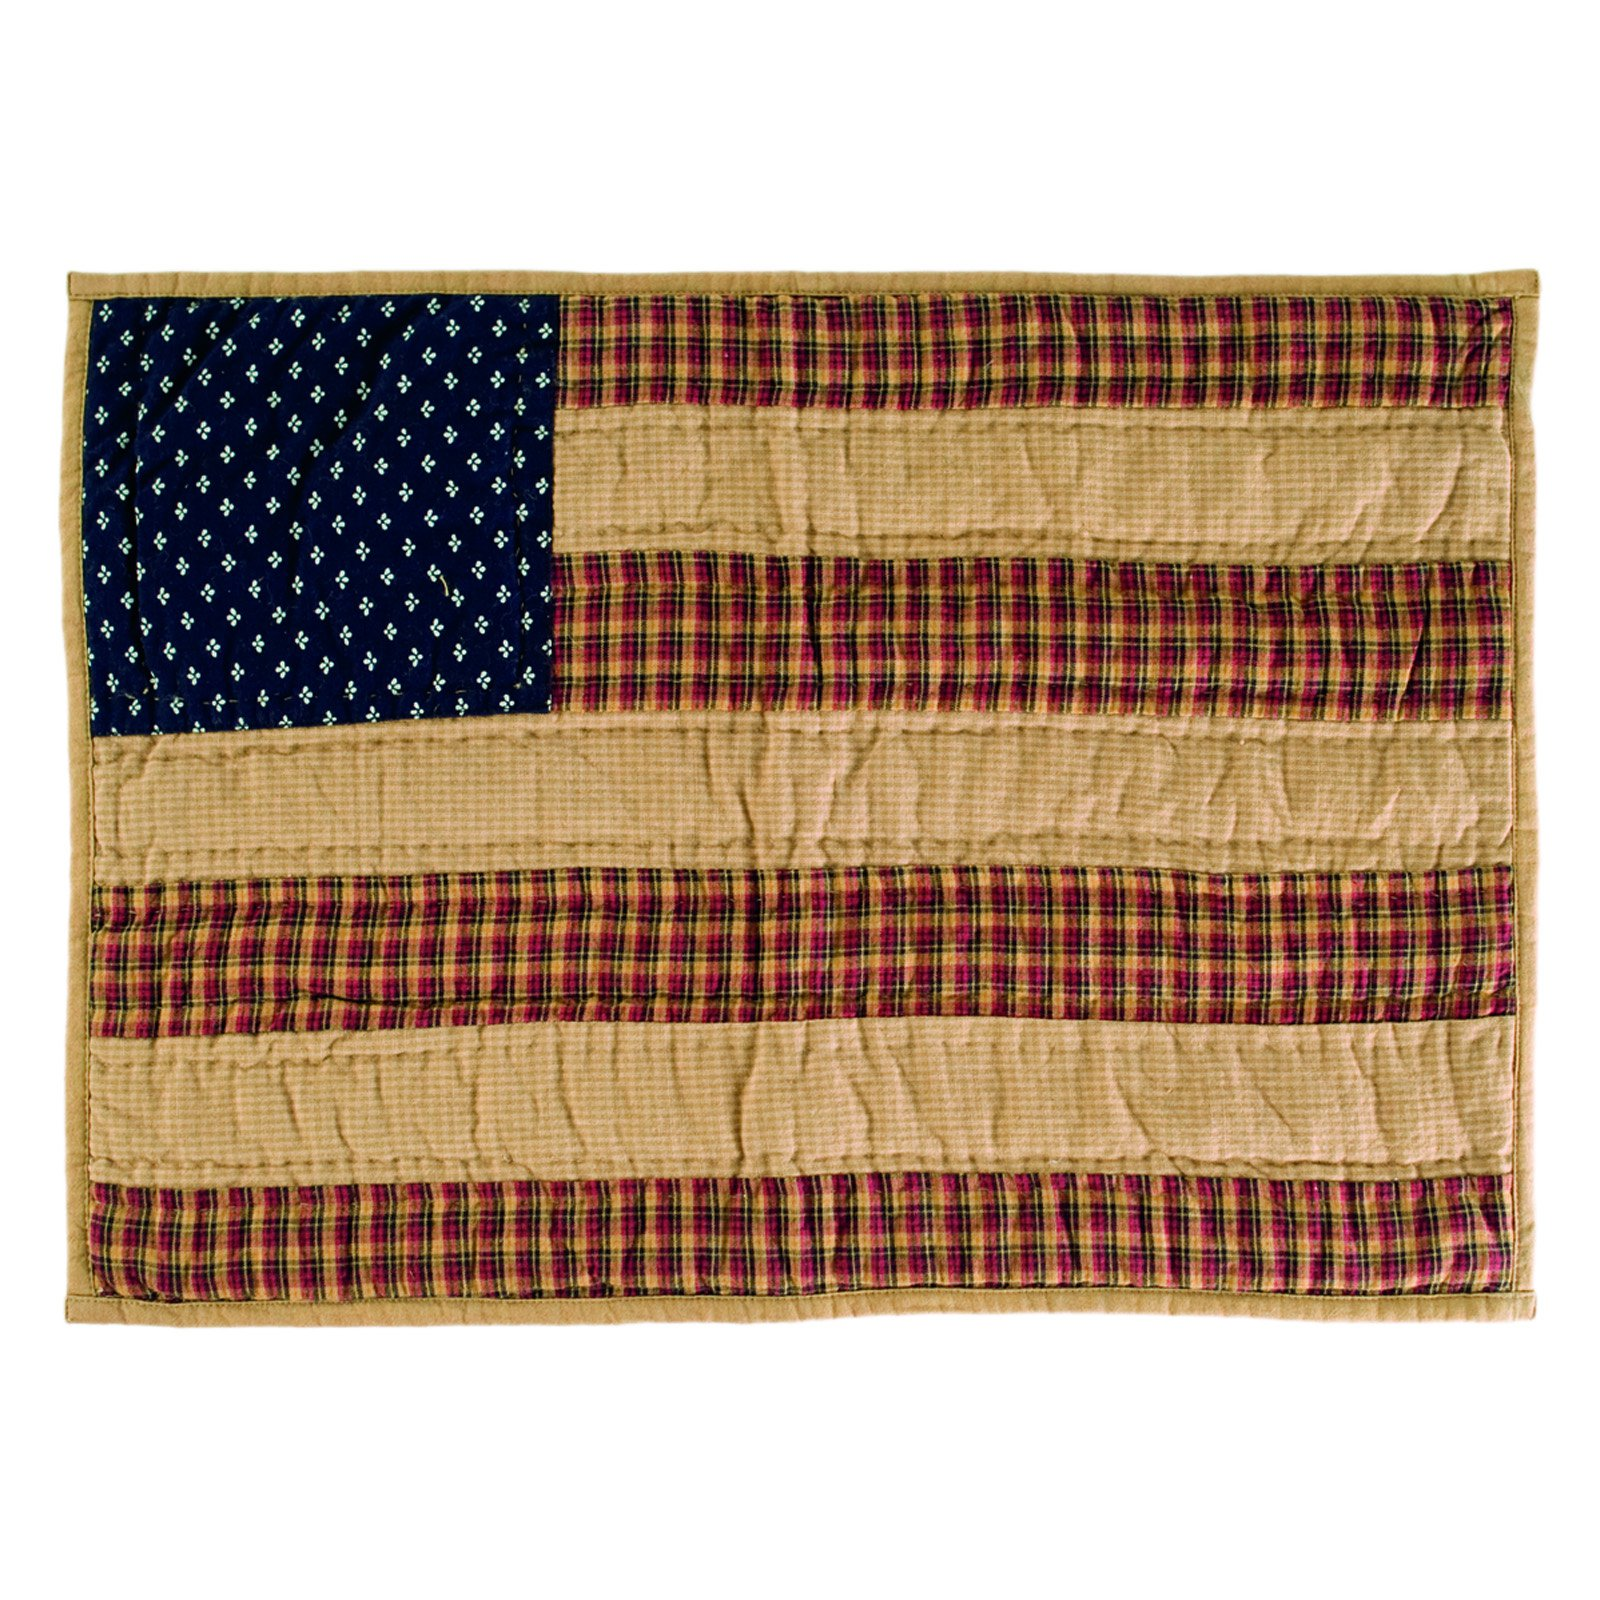 VHC Brands Patriotic Patch Quilted Placemat Set of 6 by VHC Brands